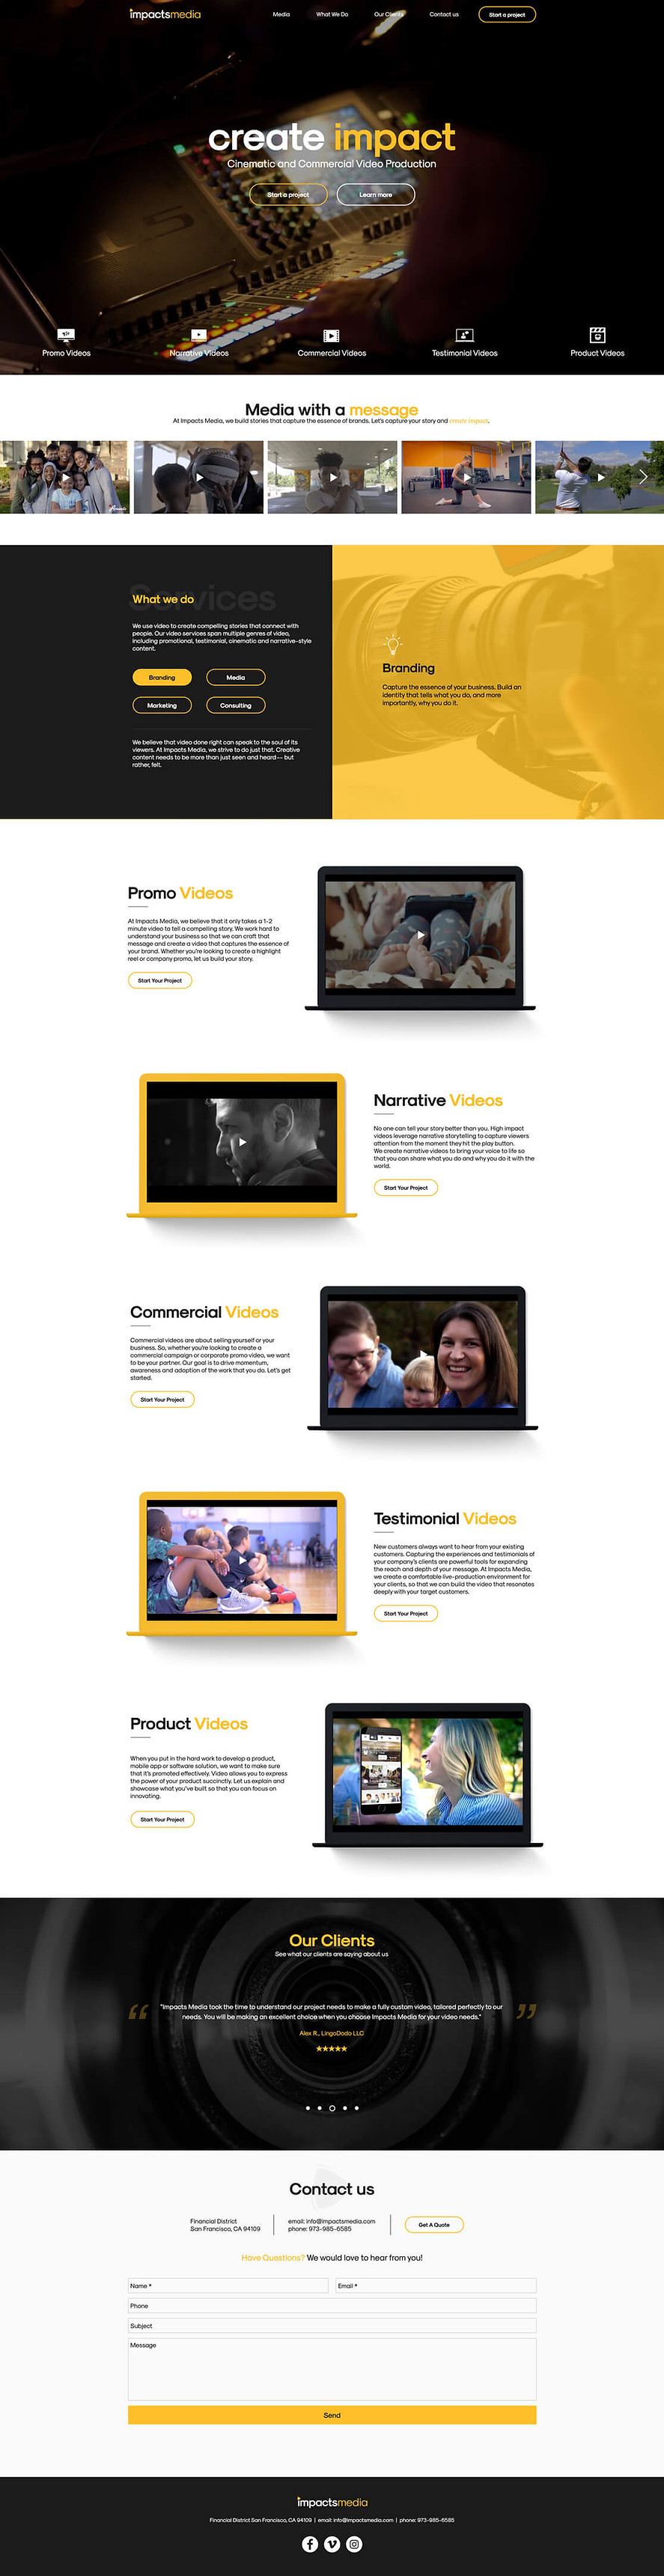 Video Production Website Design